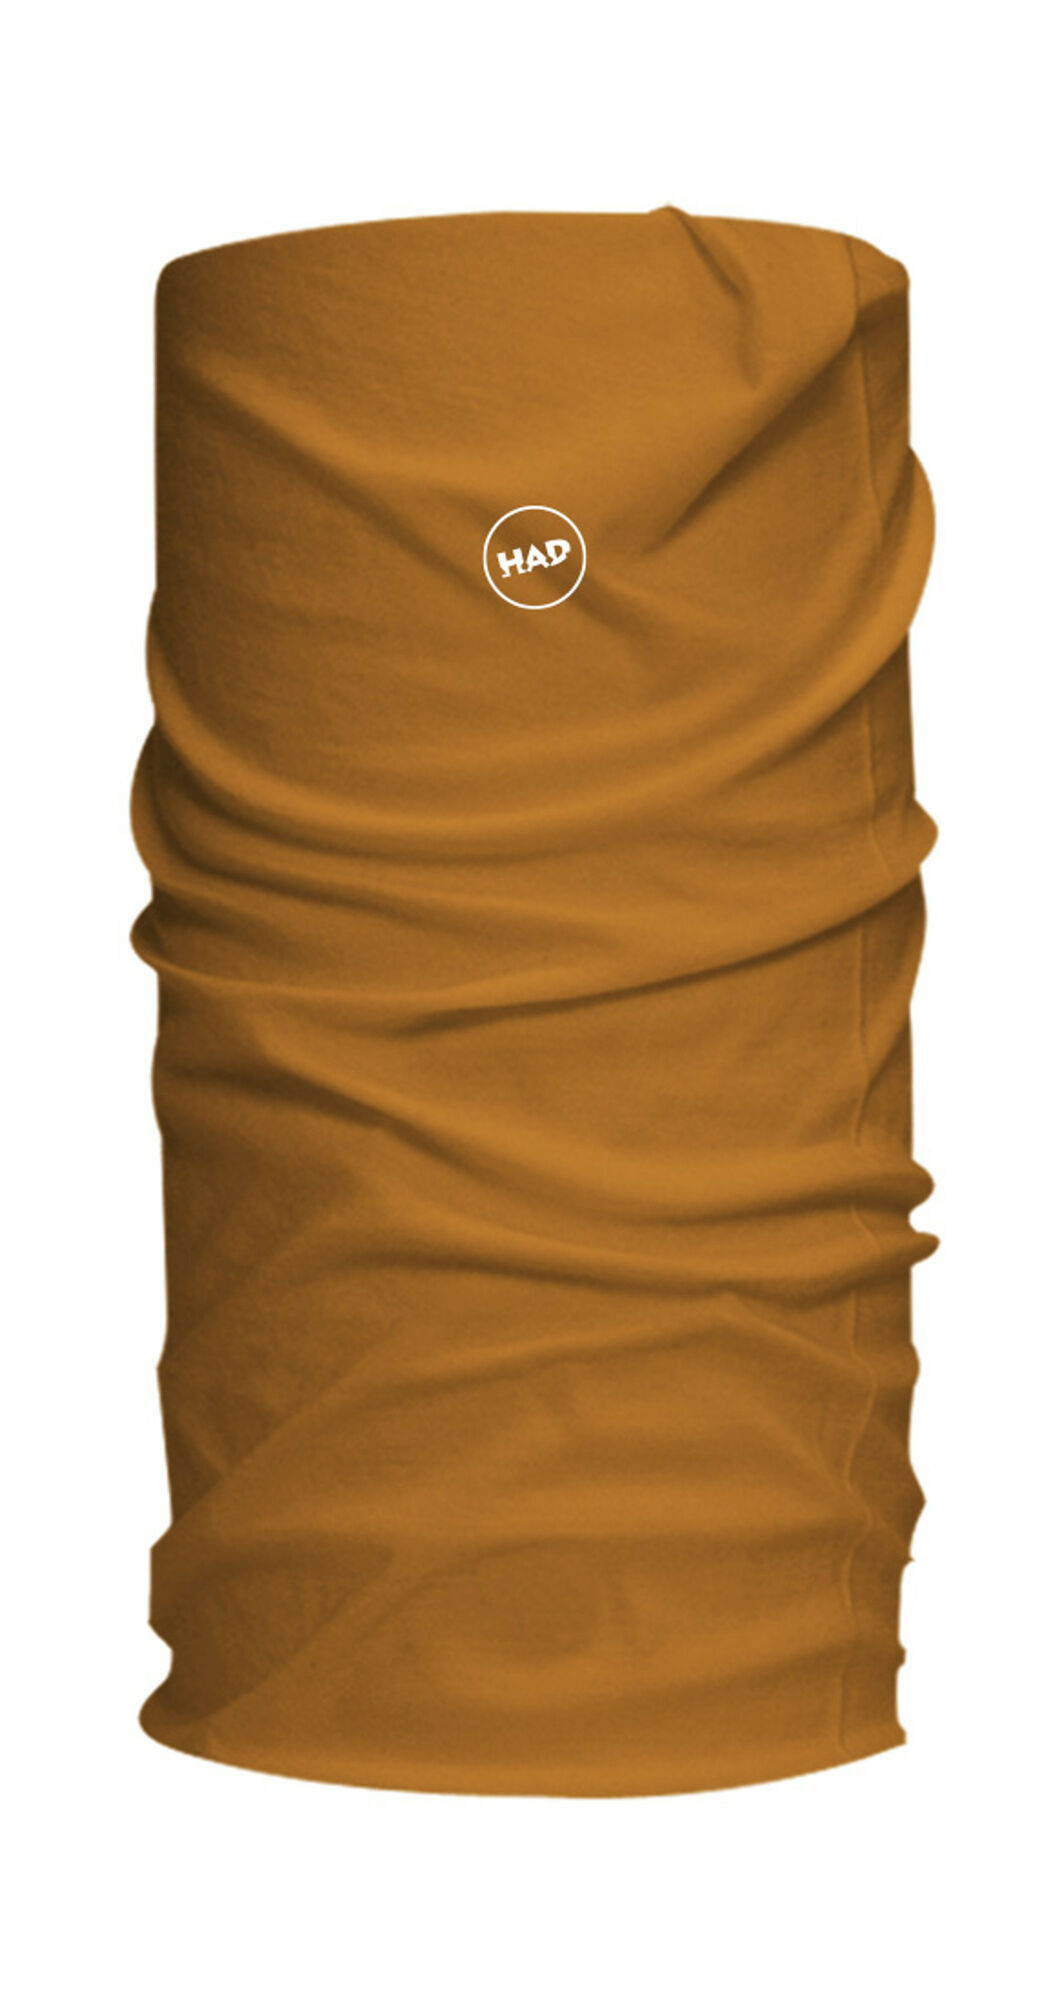 H.A.D. Solid Colors Multifunktionstuch (Camel Braun)